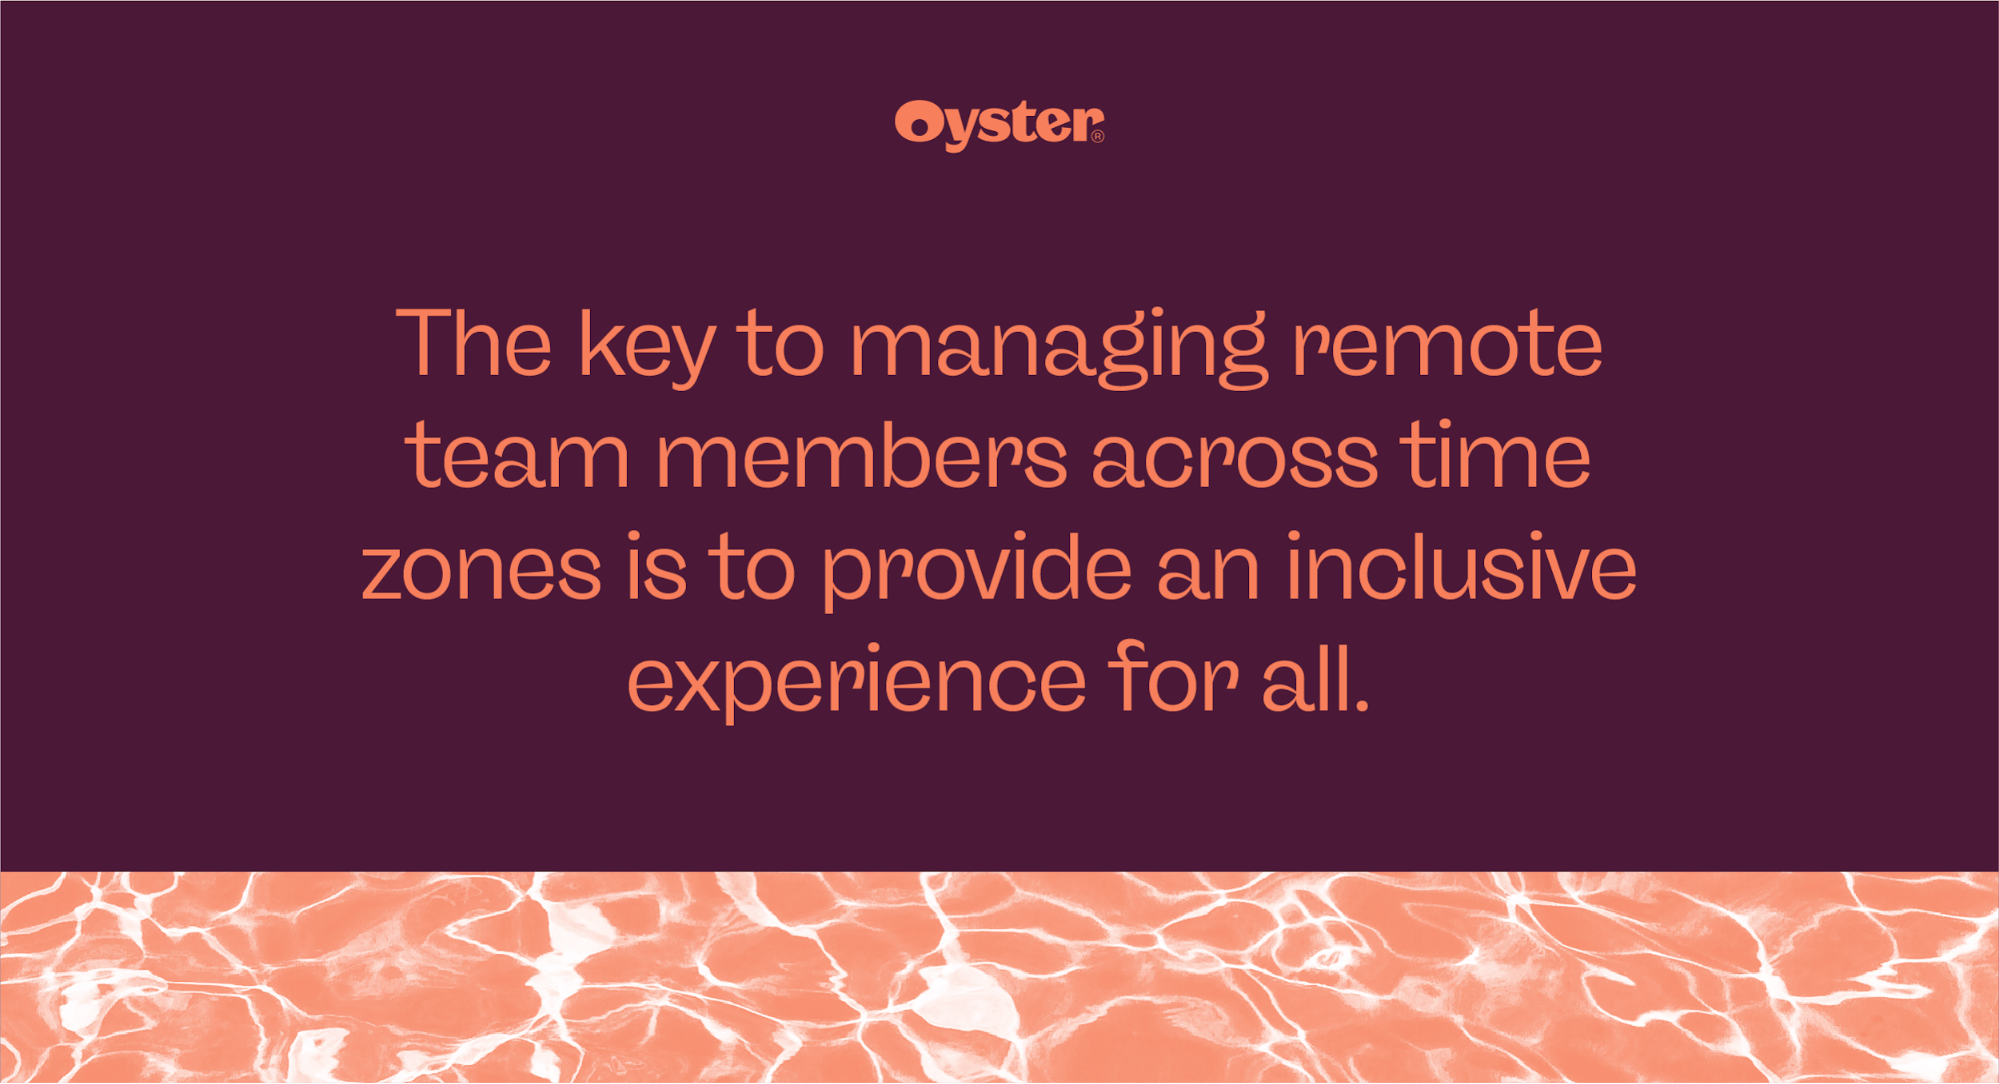 The key to managing remote team members across time zones is to provide an inclusive experience for all